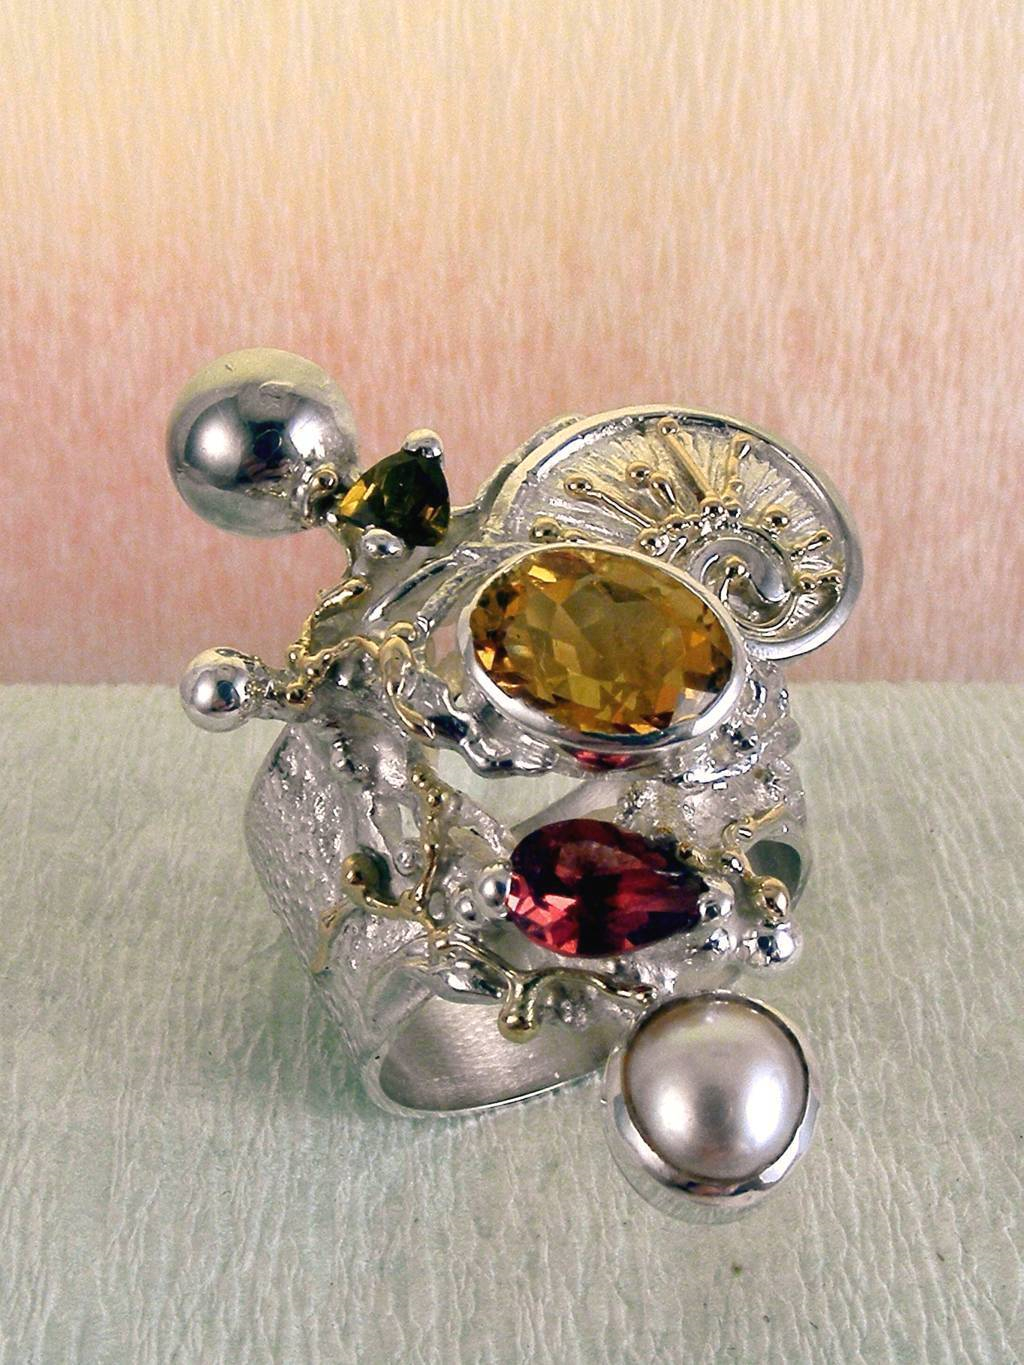 Ring with Tourmaline #9435, Original Handcrafted, Sterling Silver and Gold, Tourmaline, Garnet, Citrine, Pearl